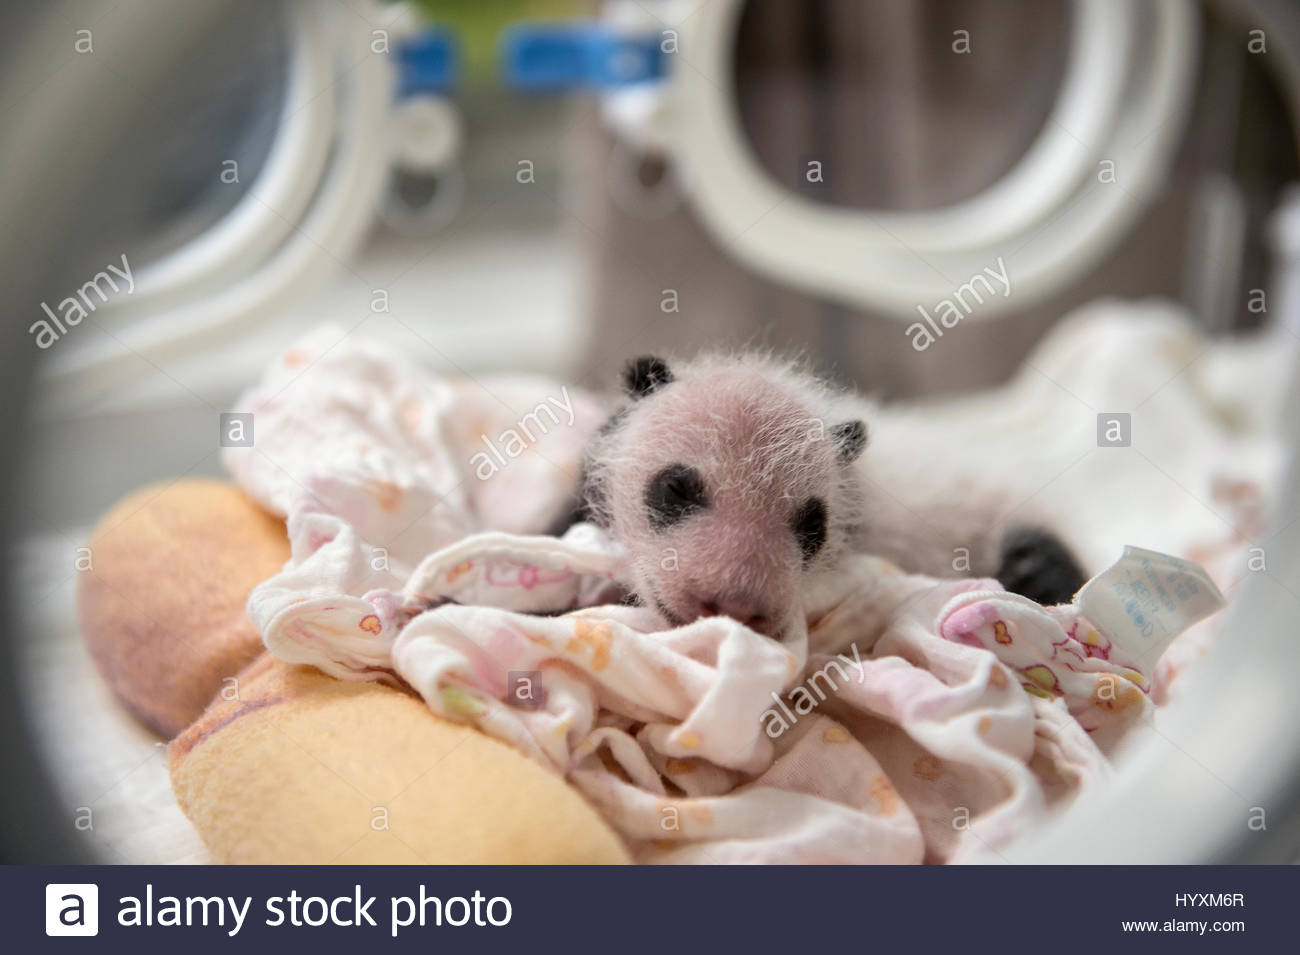 A newborn giant panda cub sleeps inside an incubator at the Bifengxia Giant Panda Breeding and Research Center. - Stock Image